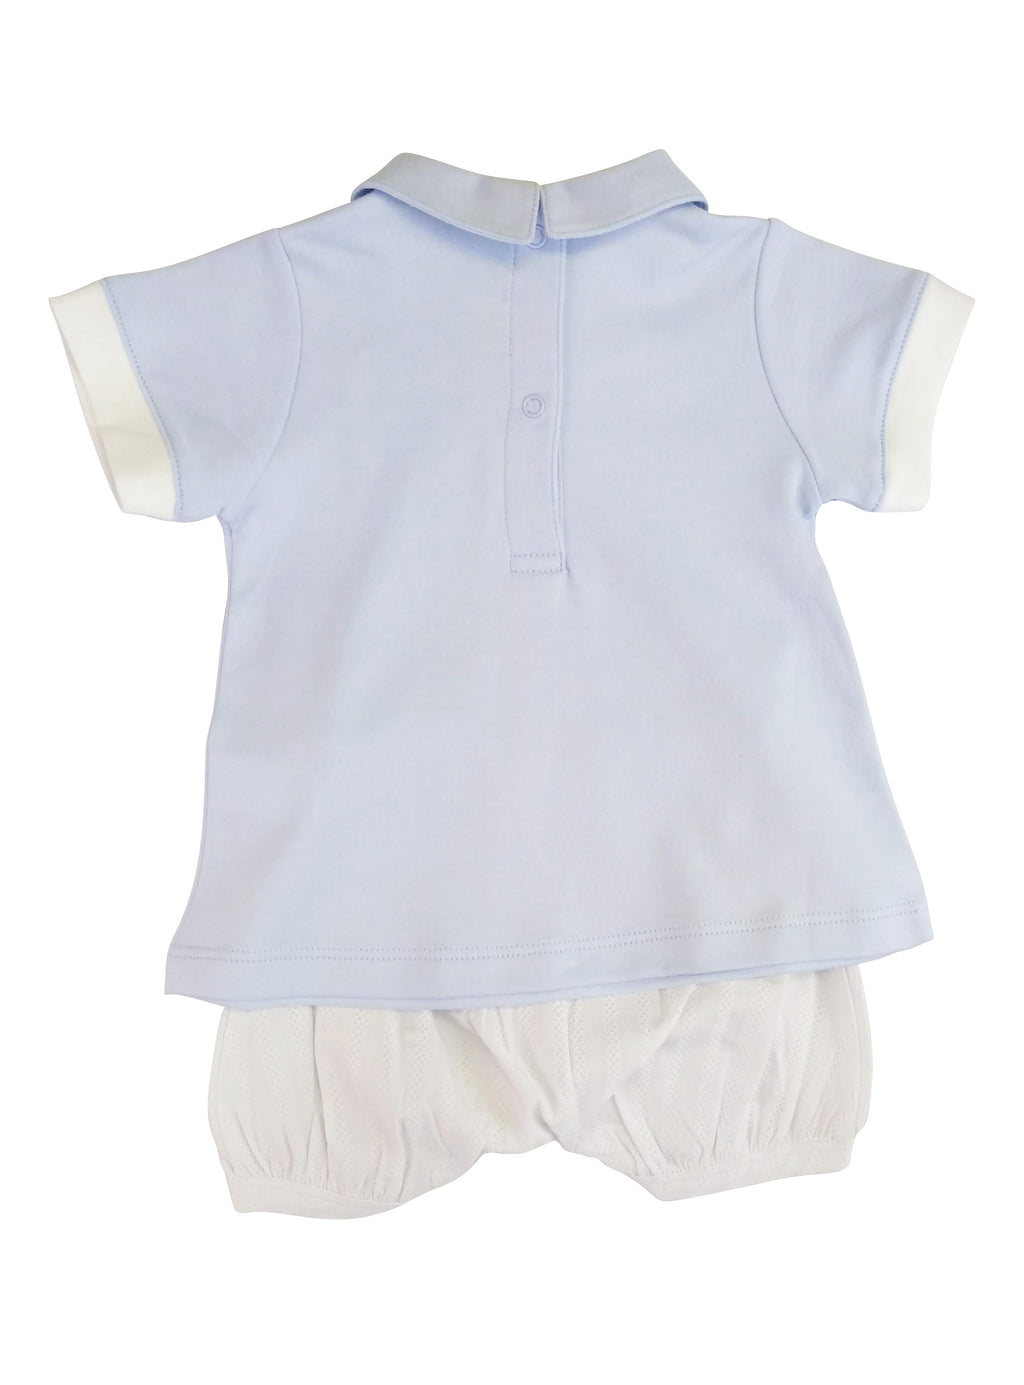 Baby Boy's Blue Dots Short Set - Little Threads Inc. Children's Clothing